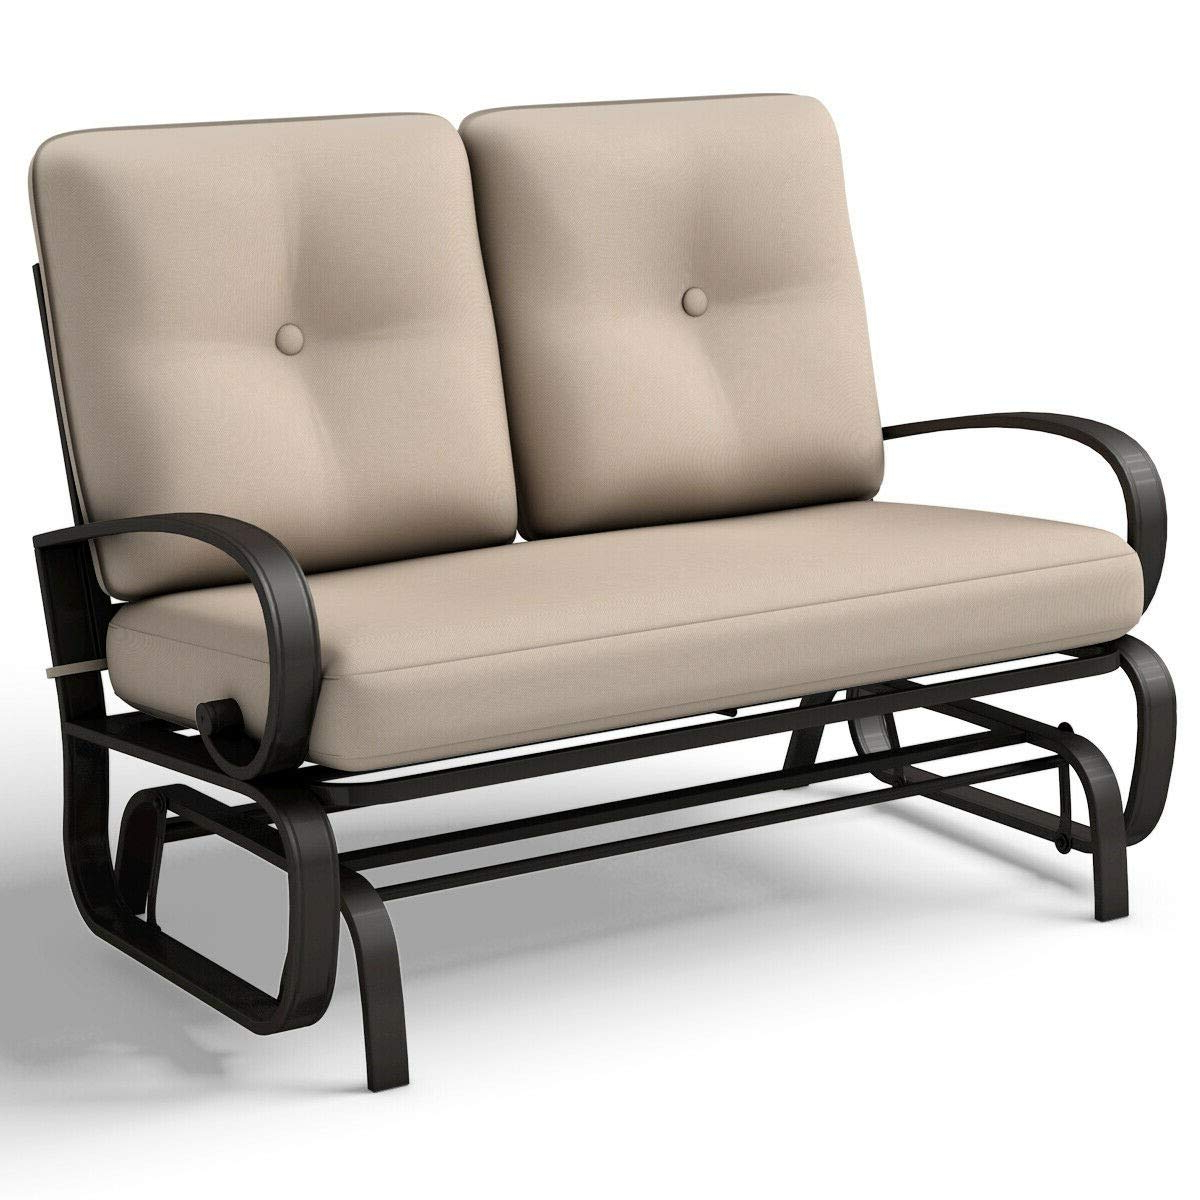 2019 Outdoor Loveseat Gliders With Cushion Within Amazon: Porch Glider Backyard Garden Patio Swing Chairs (View 6 of 30)